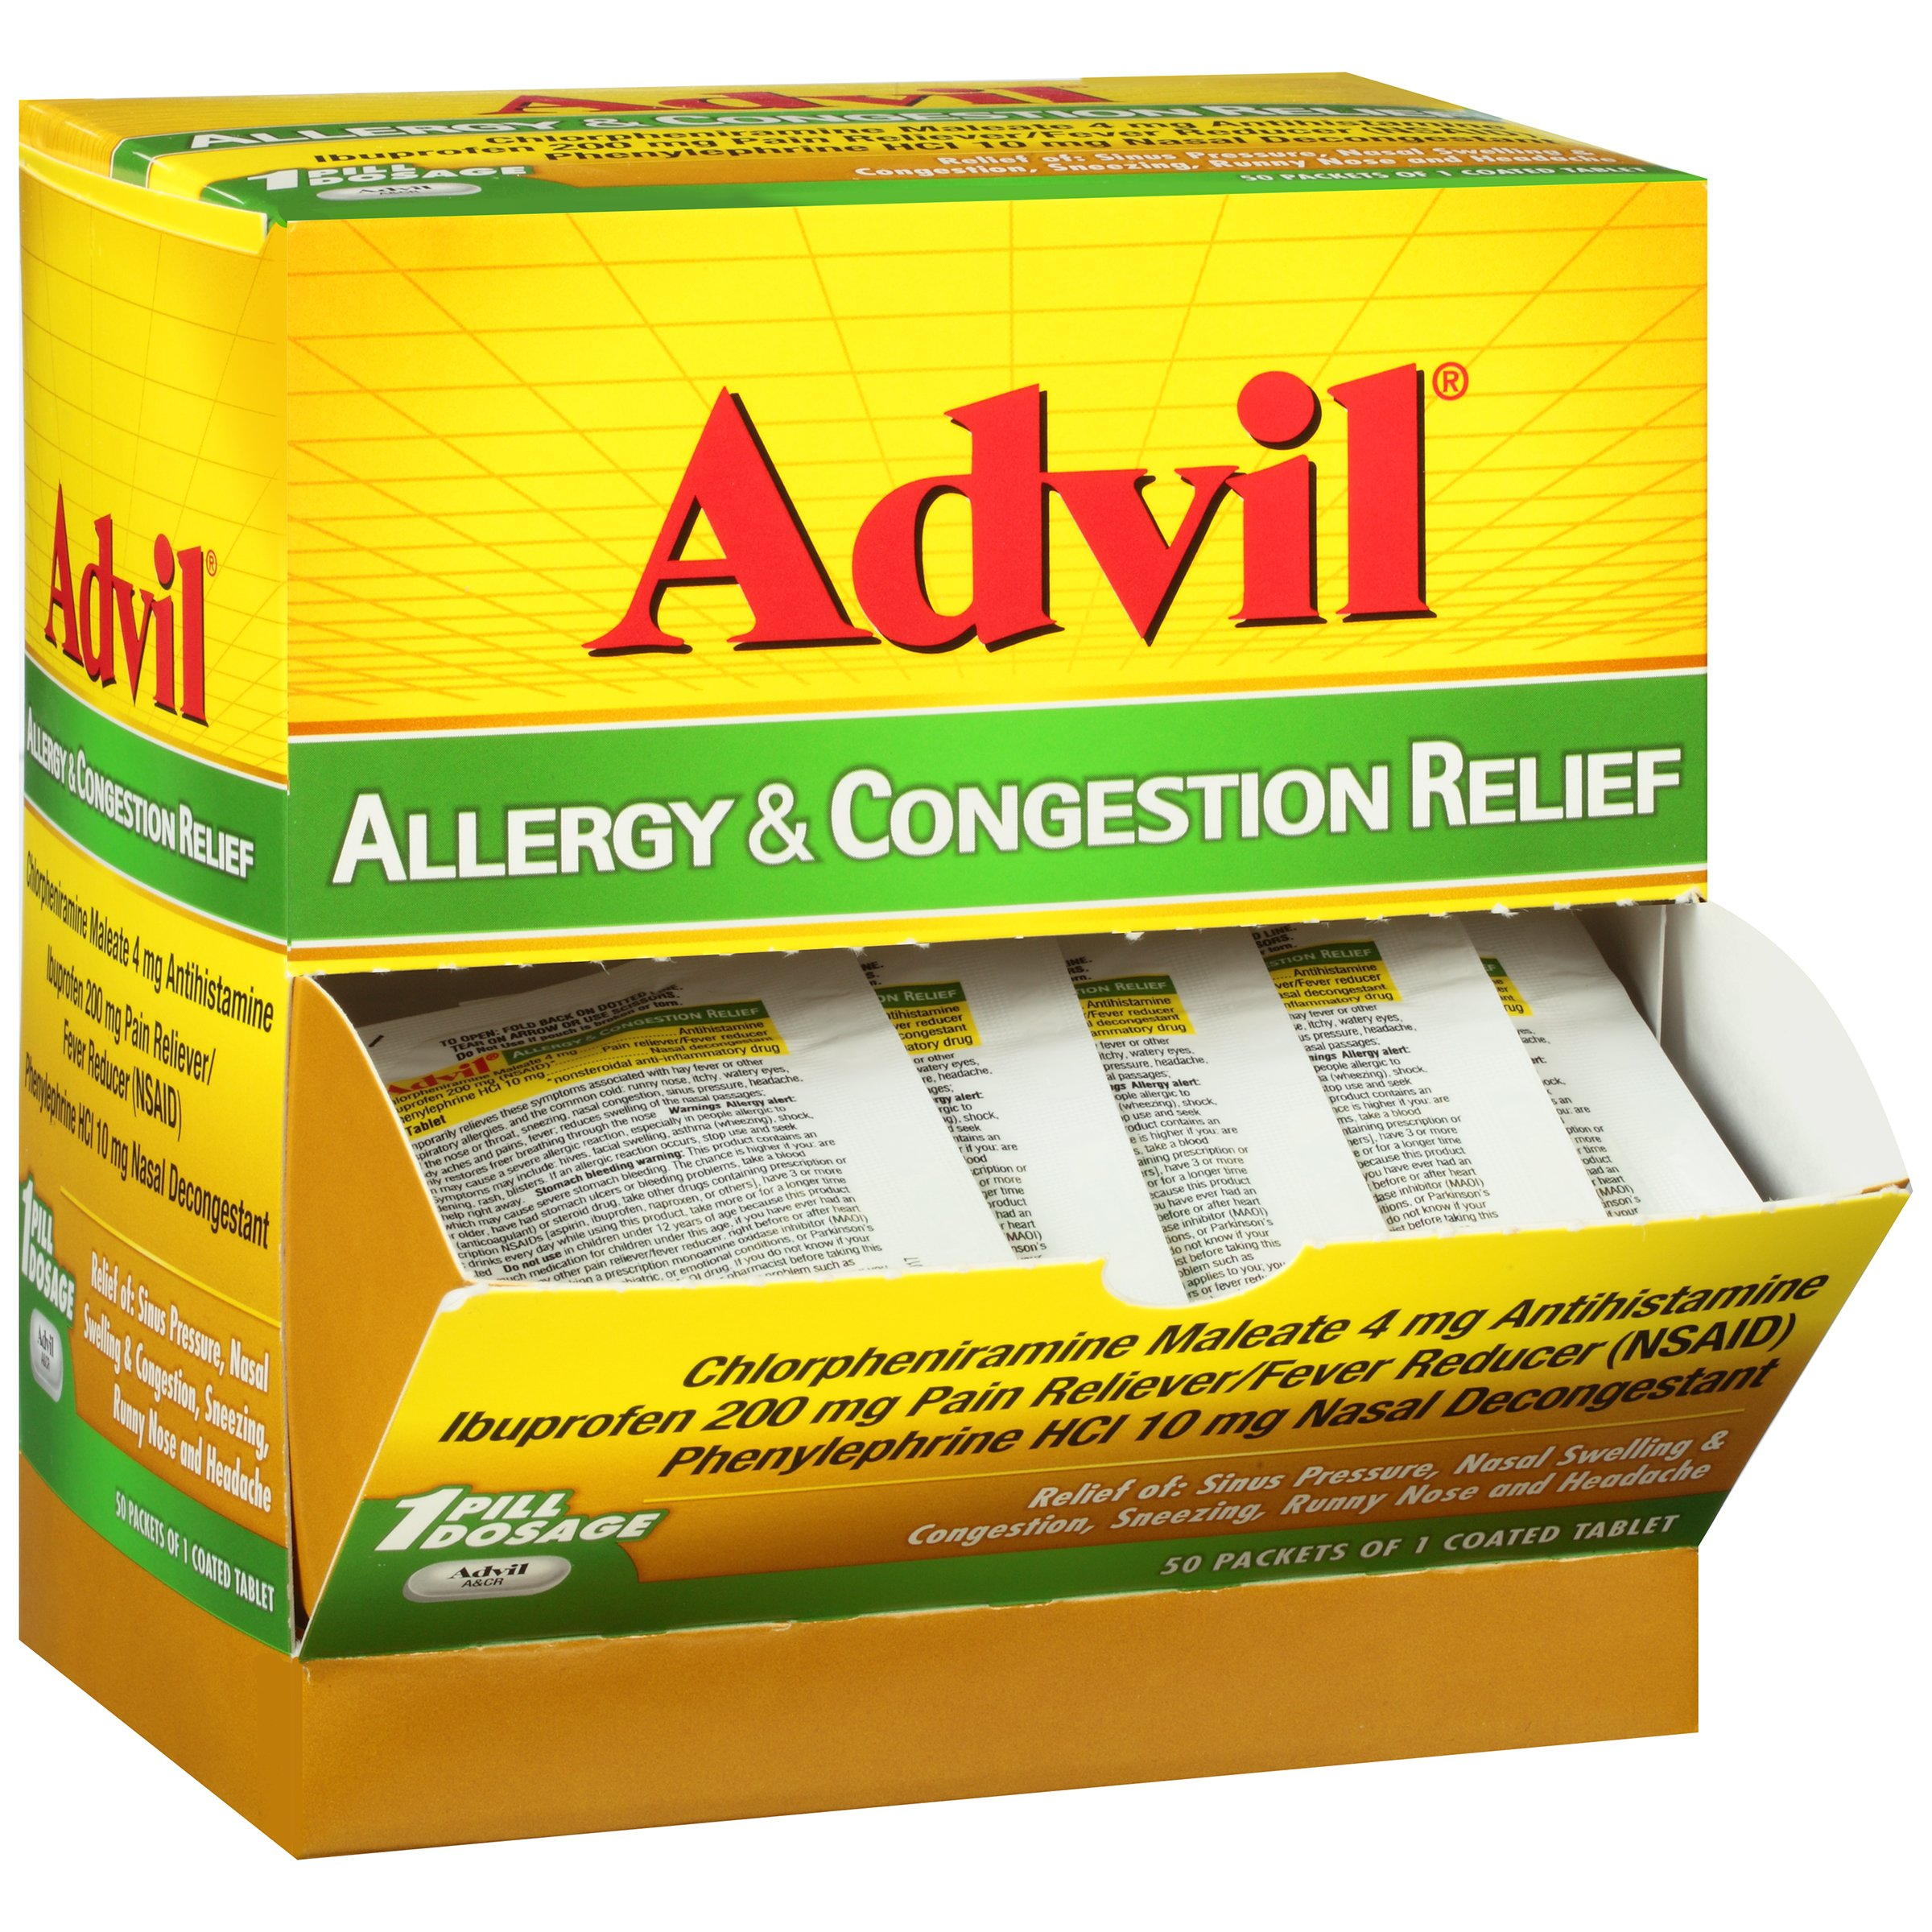 Advil Allergy & Congestion Relief (1 Dispenser of 50 Packets, 2 Count per Packet) Pain Reliever/Fever Reducer by Advil